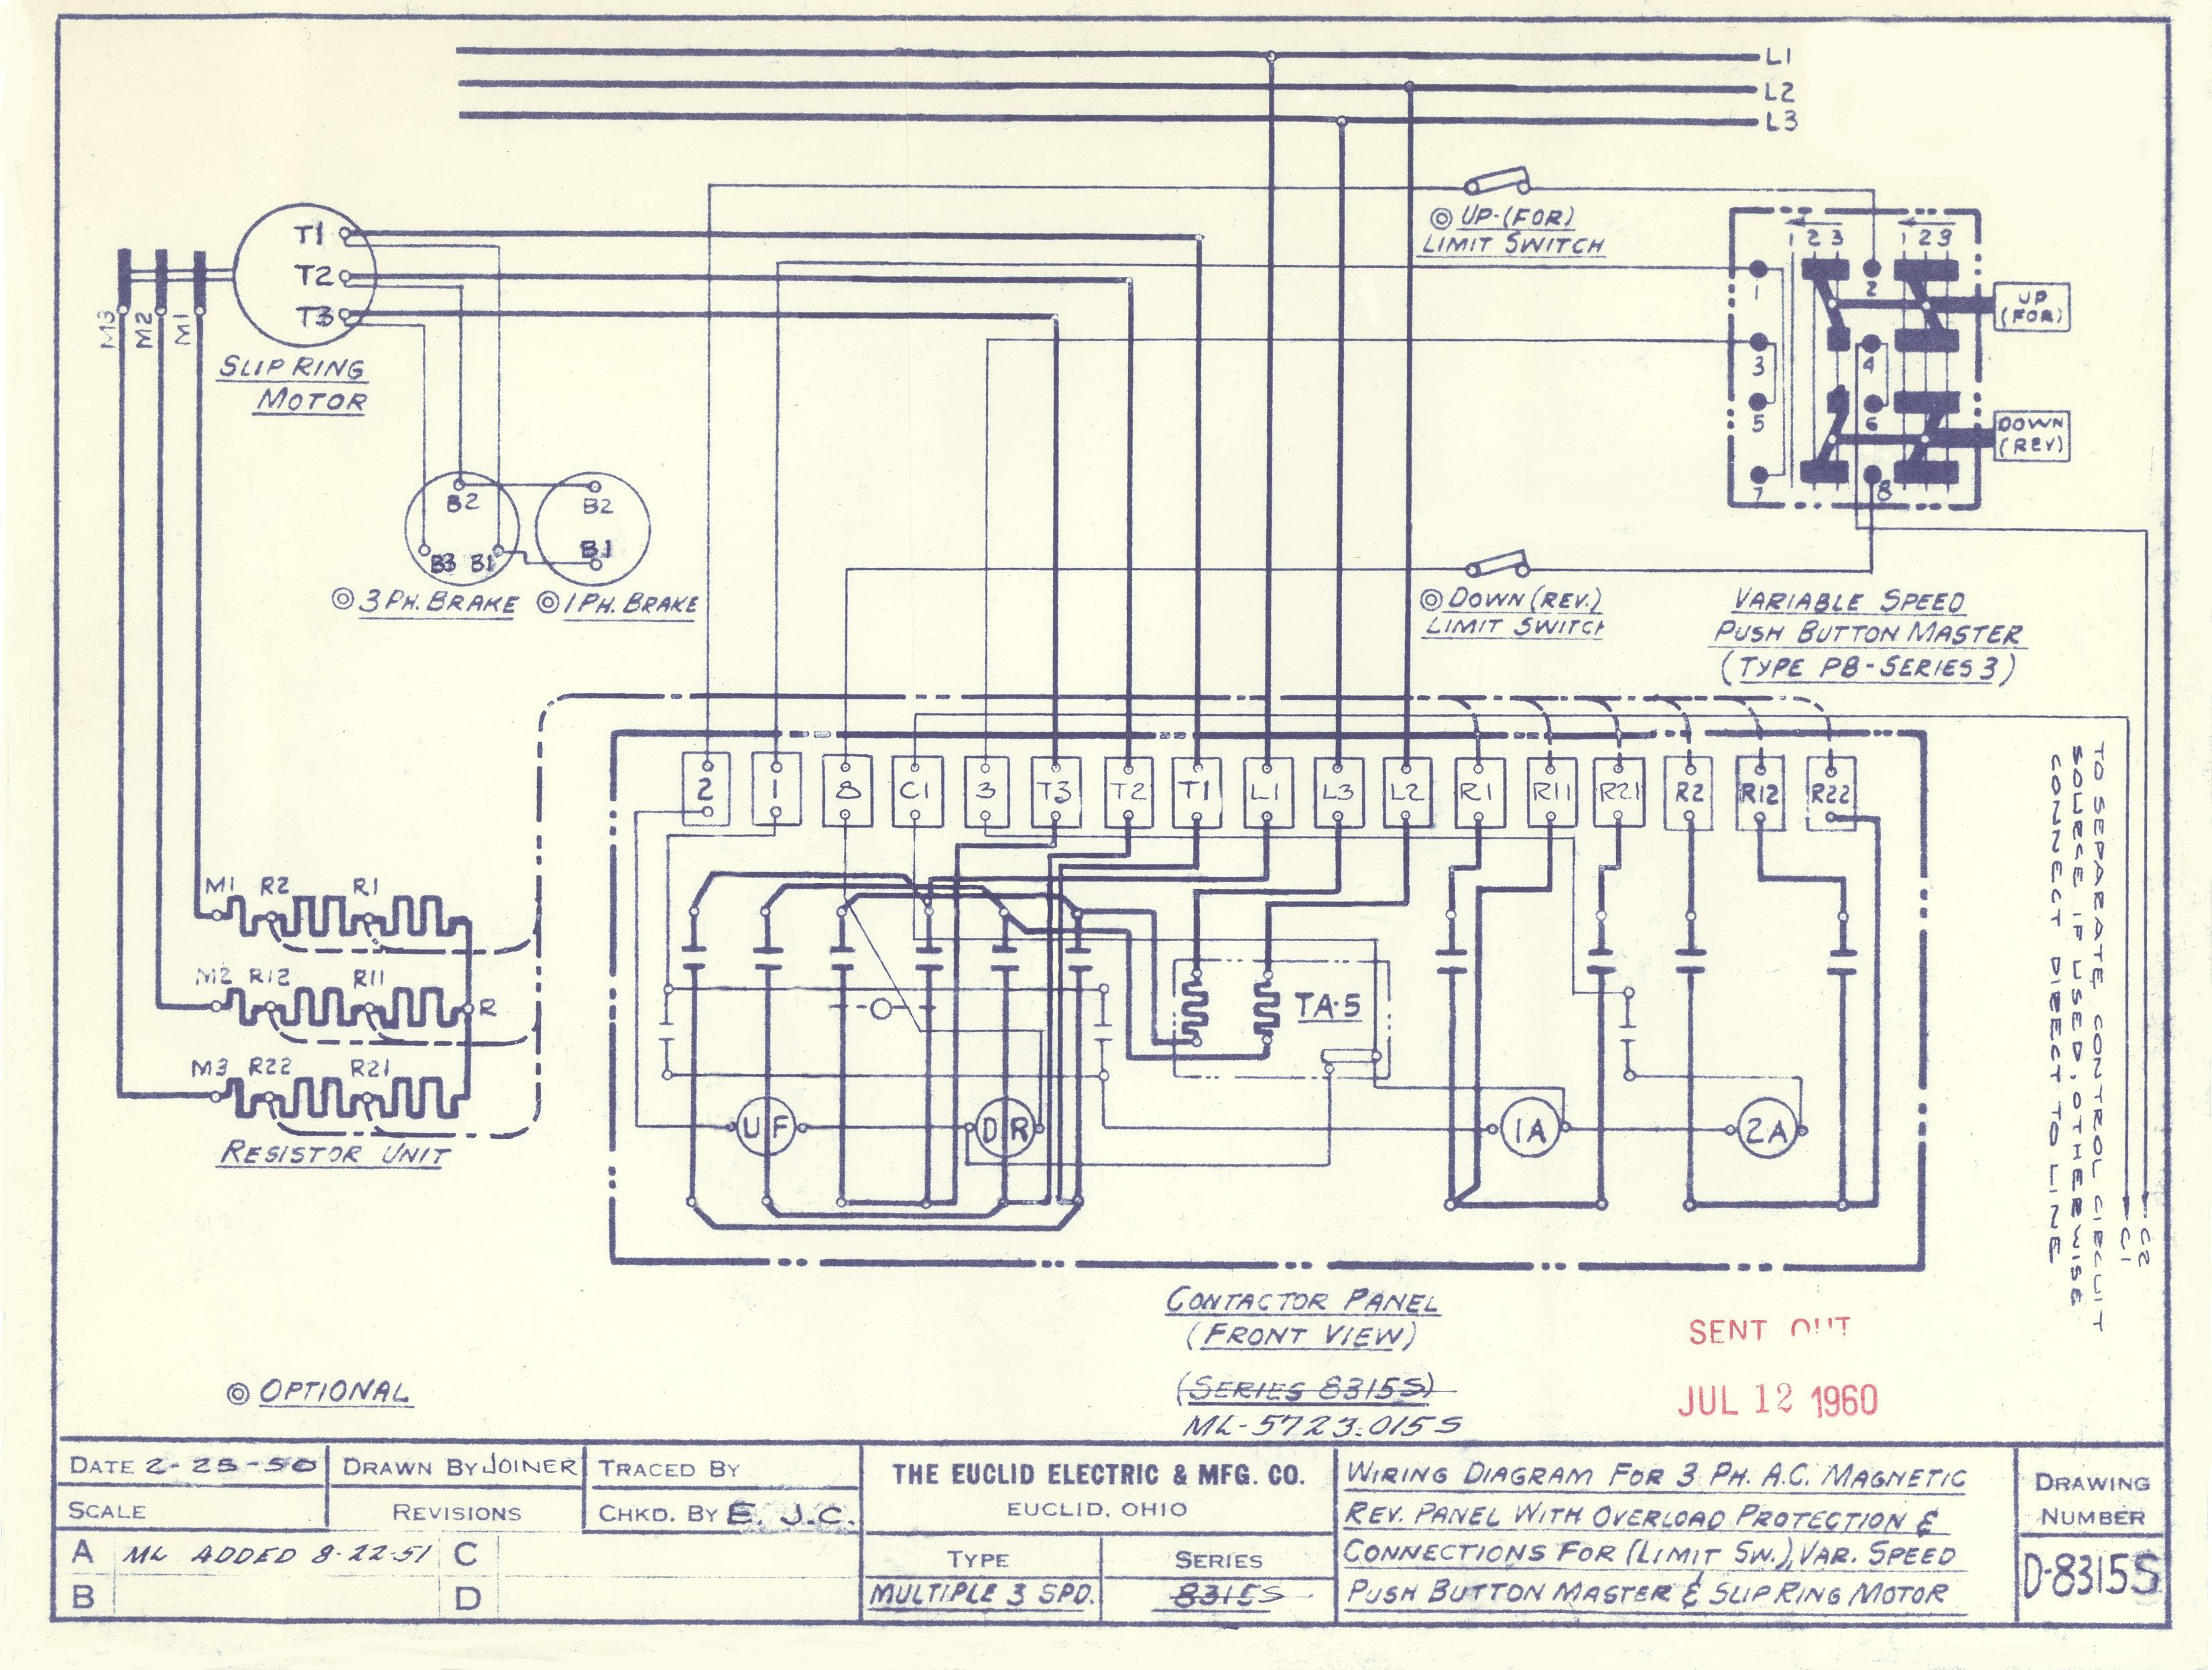 hoist wiring diagram with Images on Basic Elevator  ponents Part One furthermore Residential Electrical Panel Wiring Diagrams additionally Home Lifts together with 27 Delta VFD B Series Standard Wiring Diagram as well 3 Phase Converter Wiring Diagram.